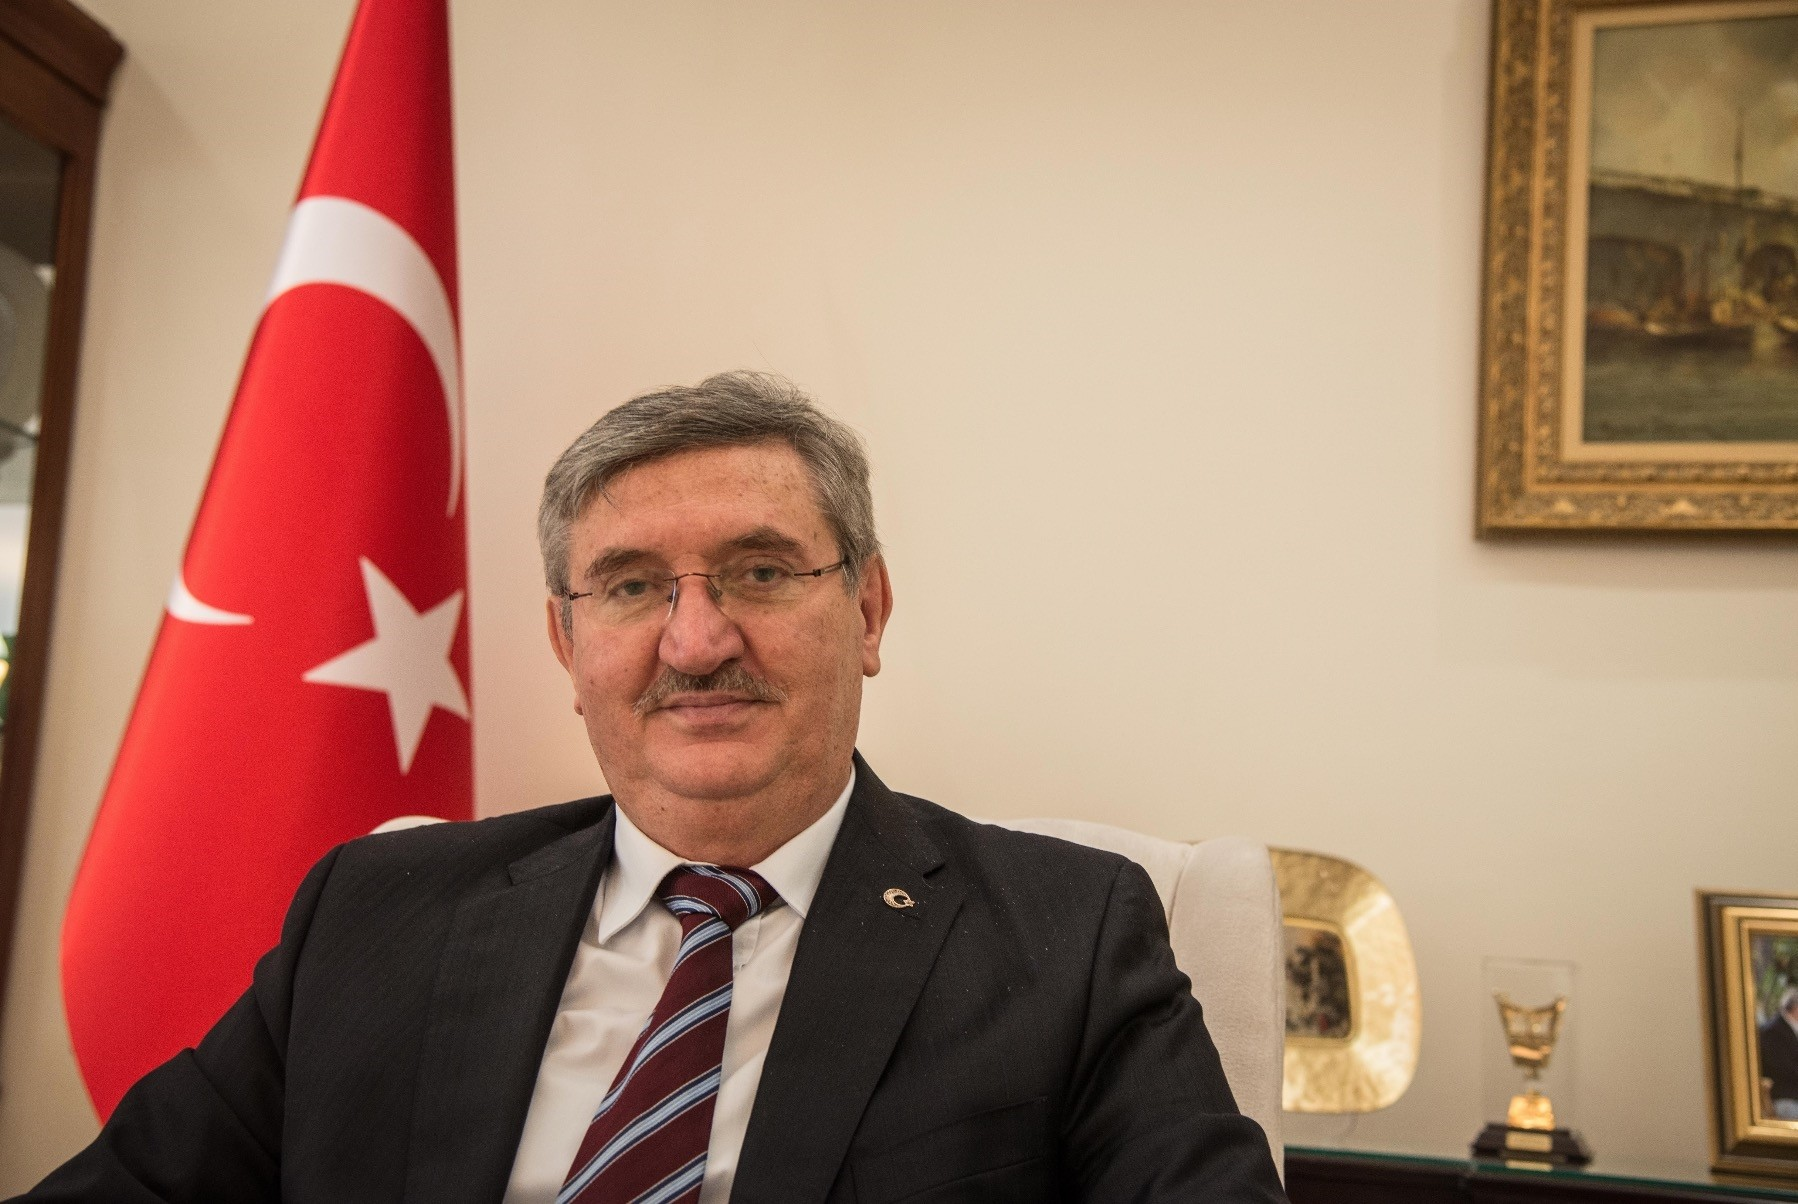 Turkeyu2019s envoy to Qatar Fikret u00d6zer said bilateral relations have developed quickly in recent years on the basis of mutual interests and have reached an exemplary level.